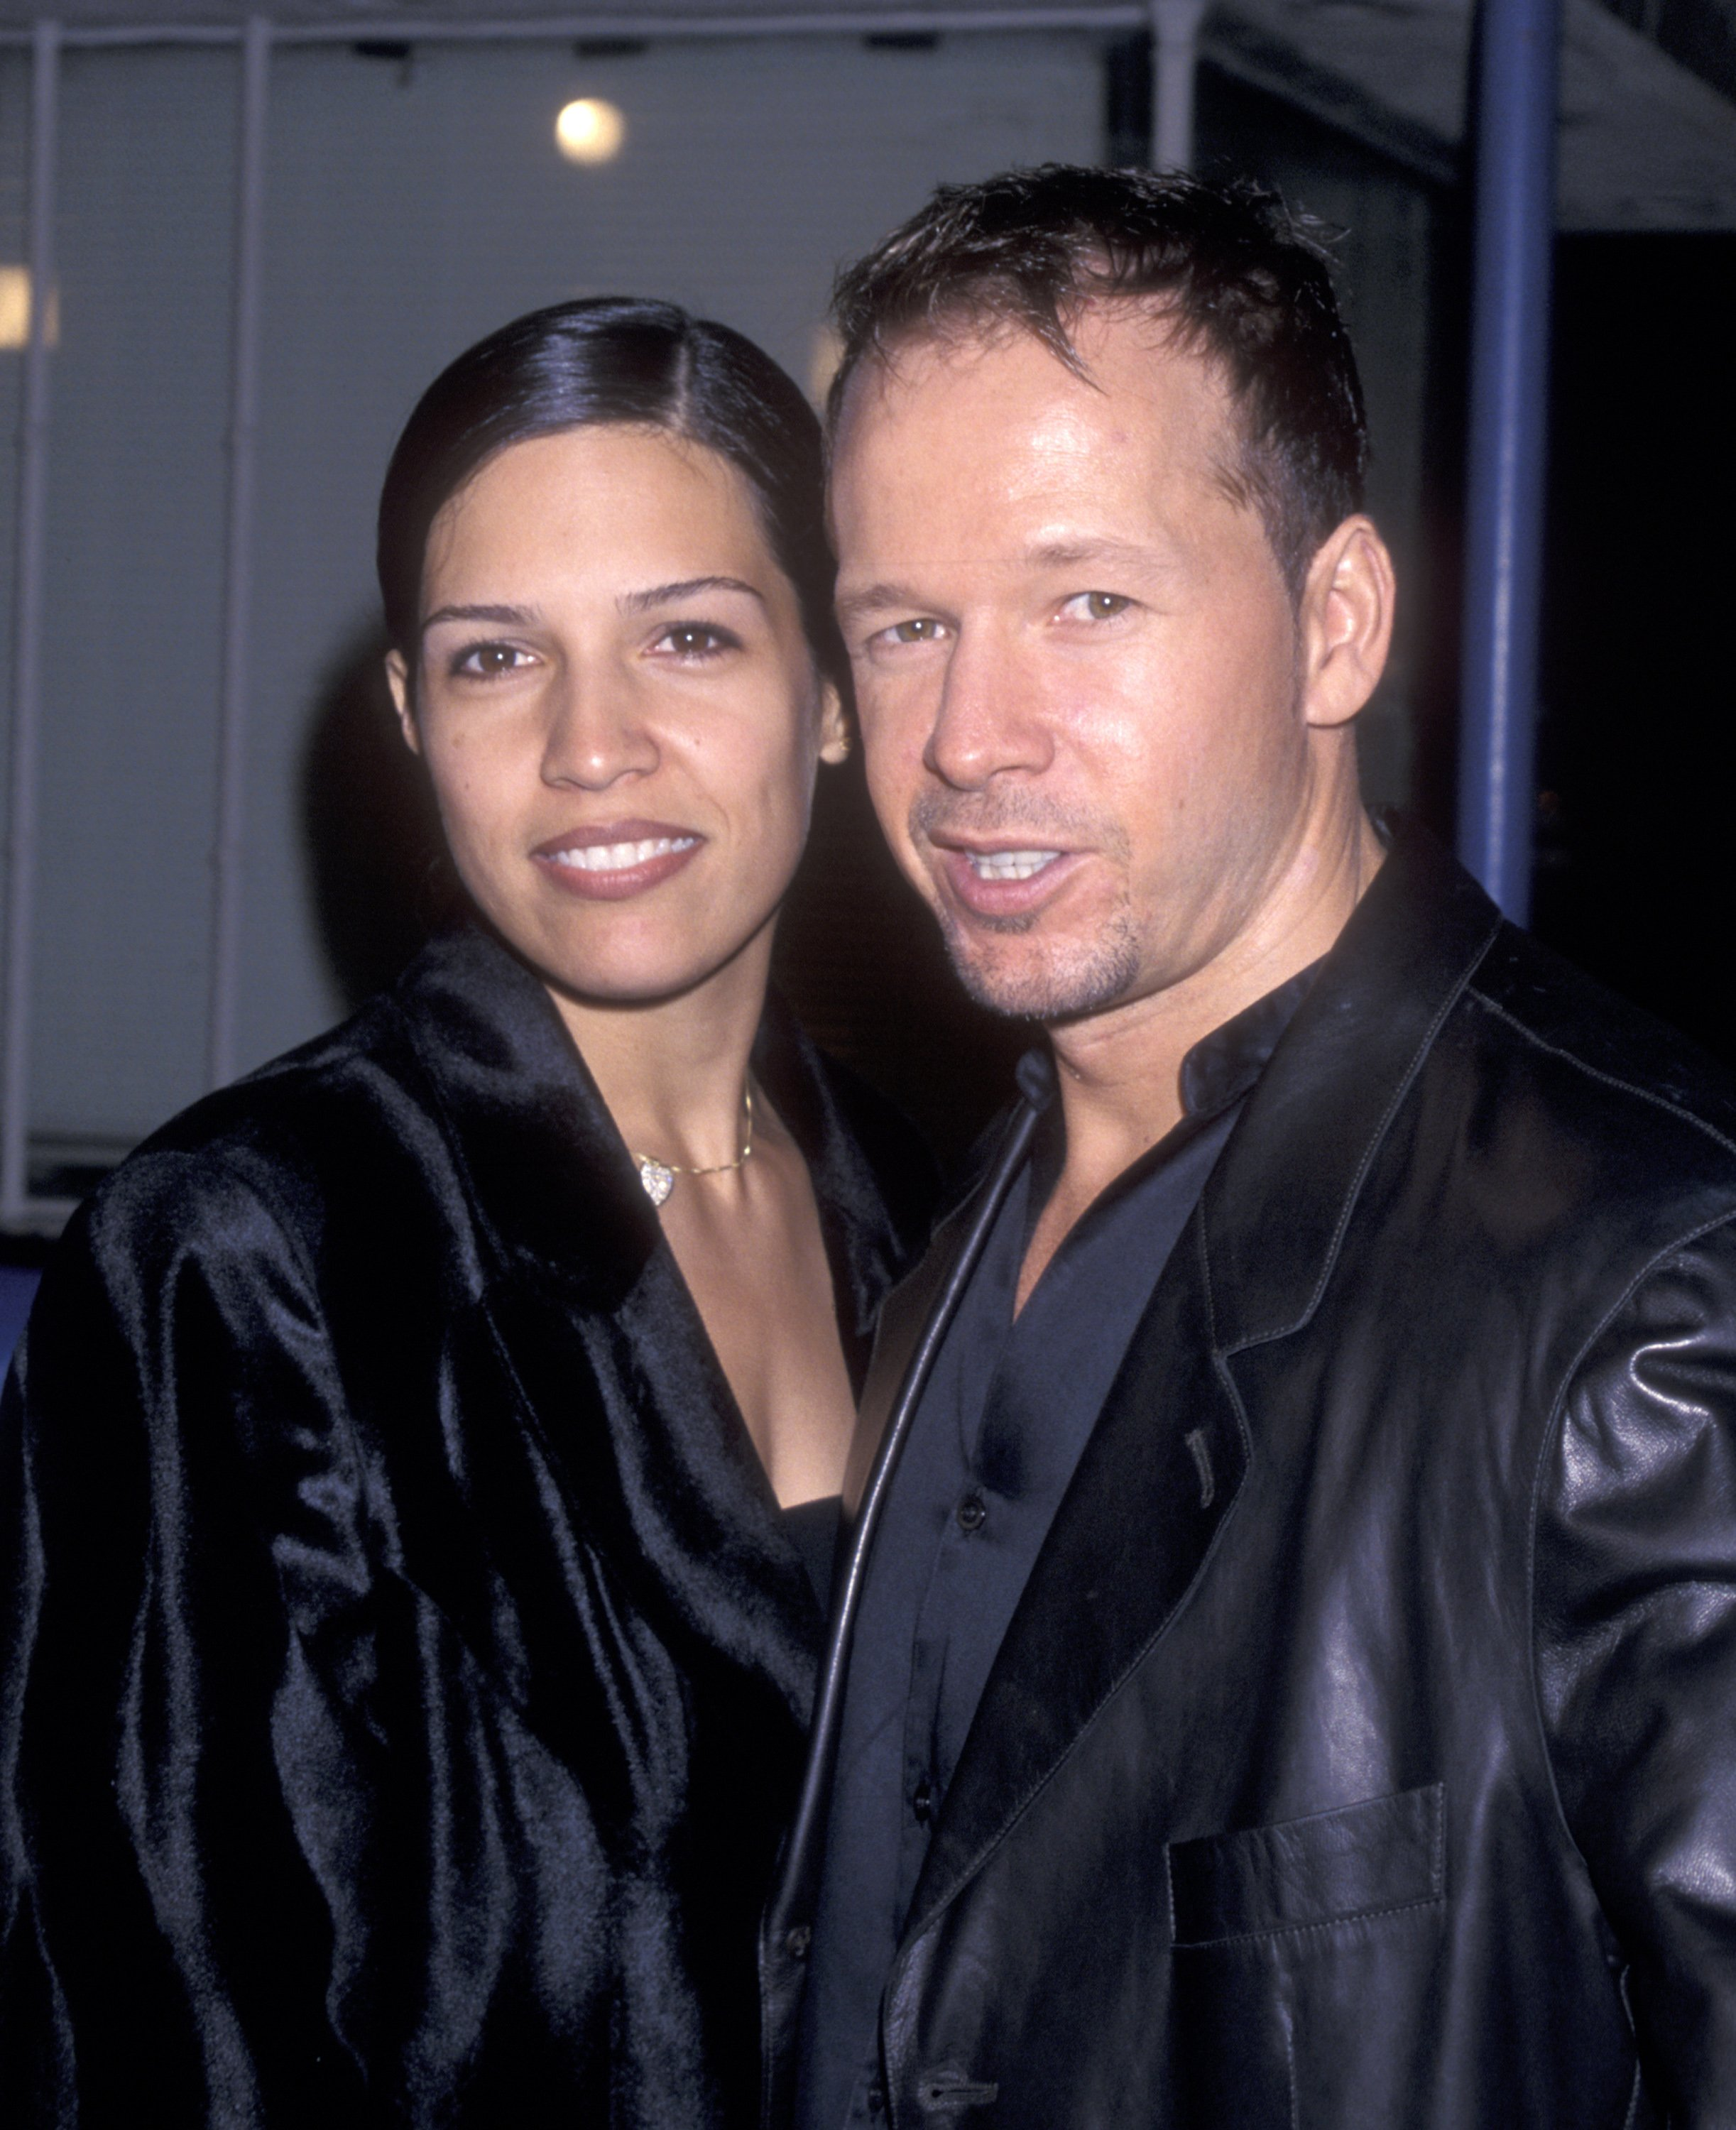 Image Credit: Getty Images/Ron Galella Collection via Getty Images/Ron Galella, Ltd | Wahlberg and his wife